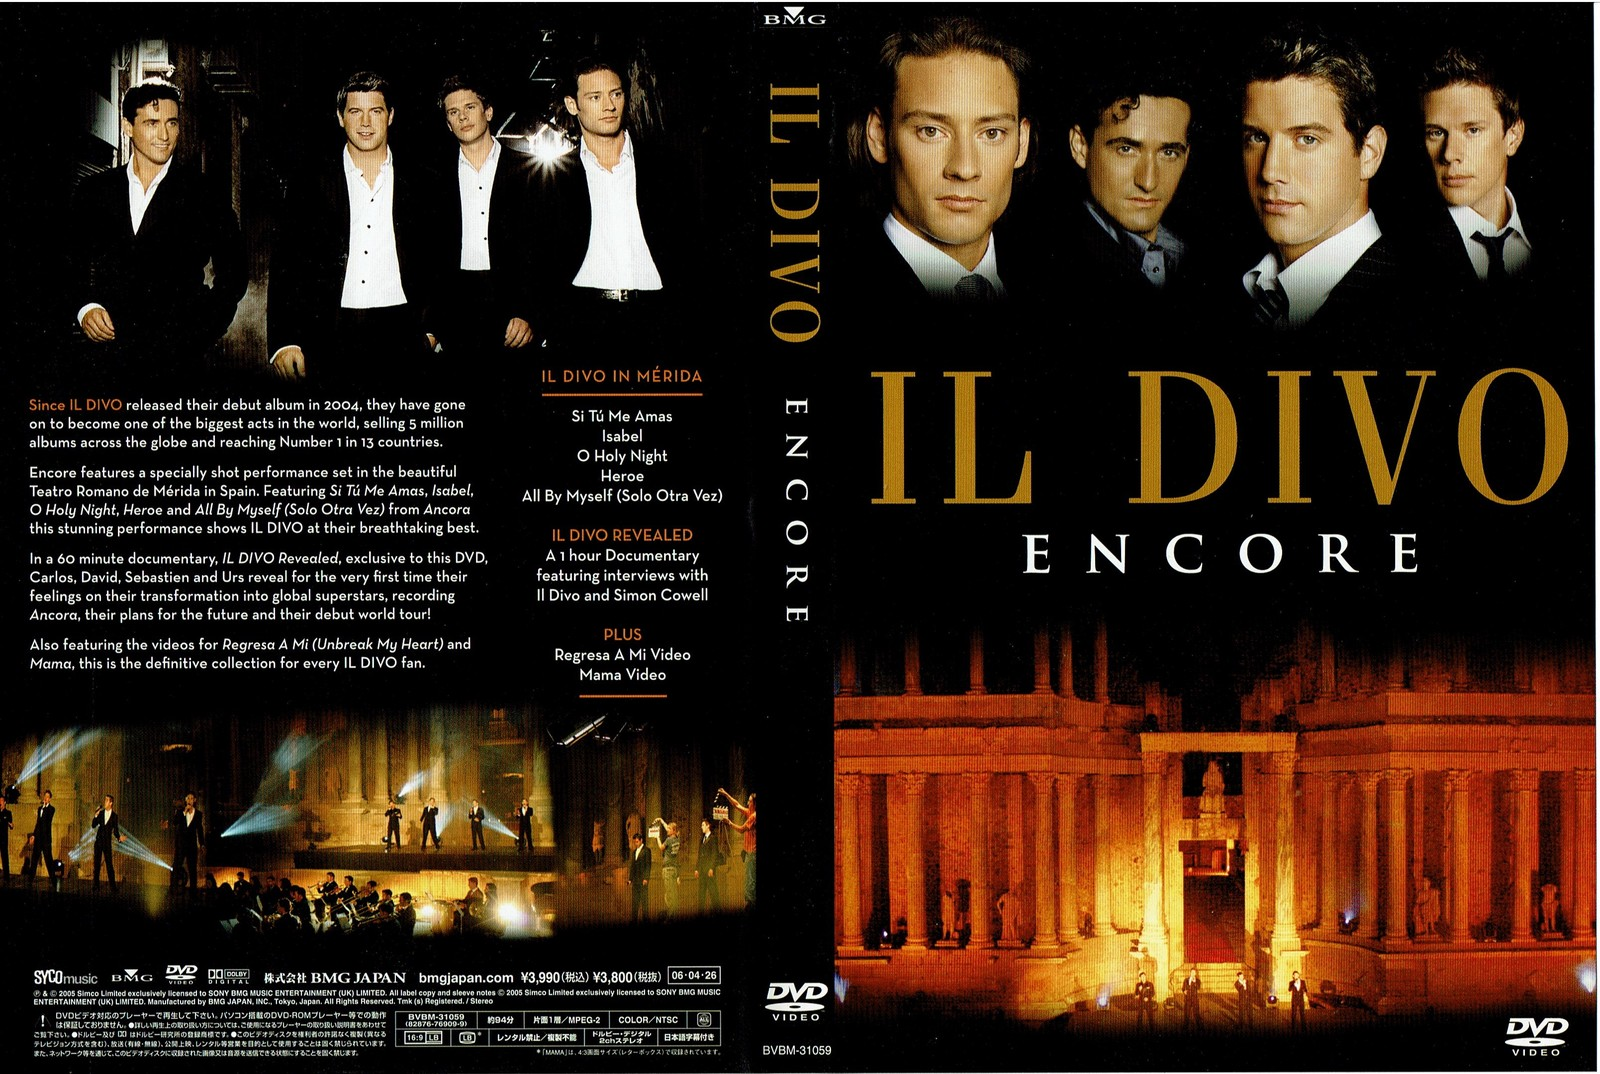 Il Divo - Encore, Music Video Concert, DVD, 2006